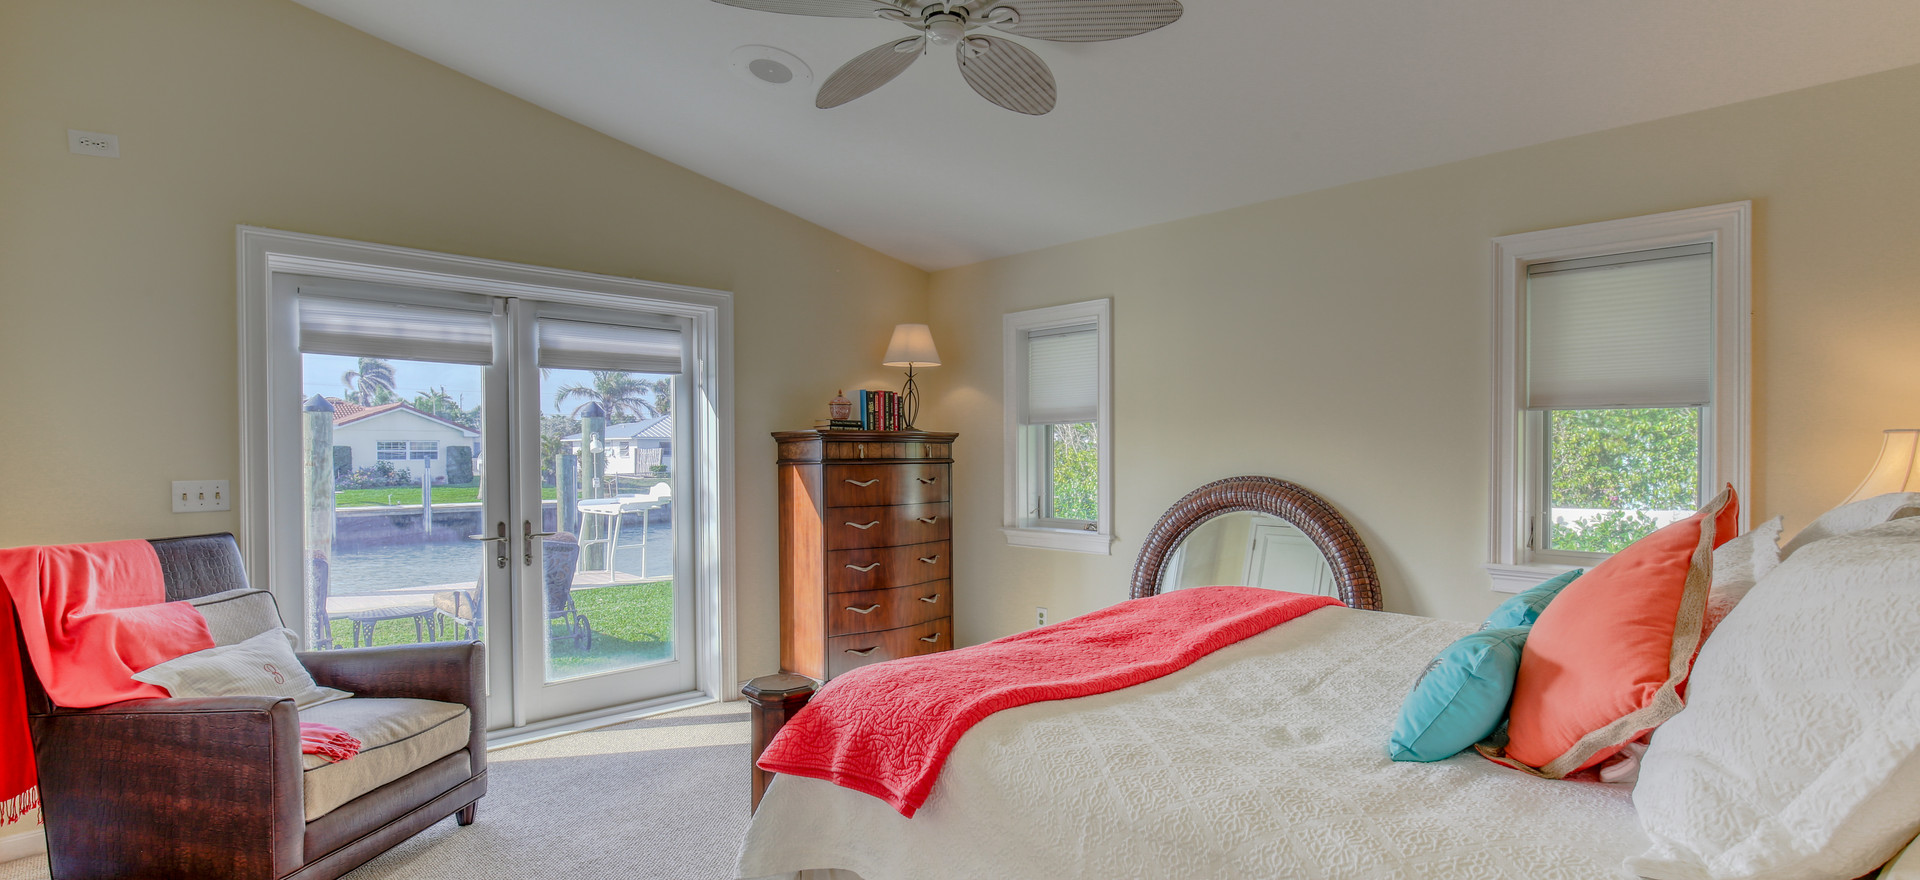 Real Estate Photography SpecialistsReal Estate Photography Specialists